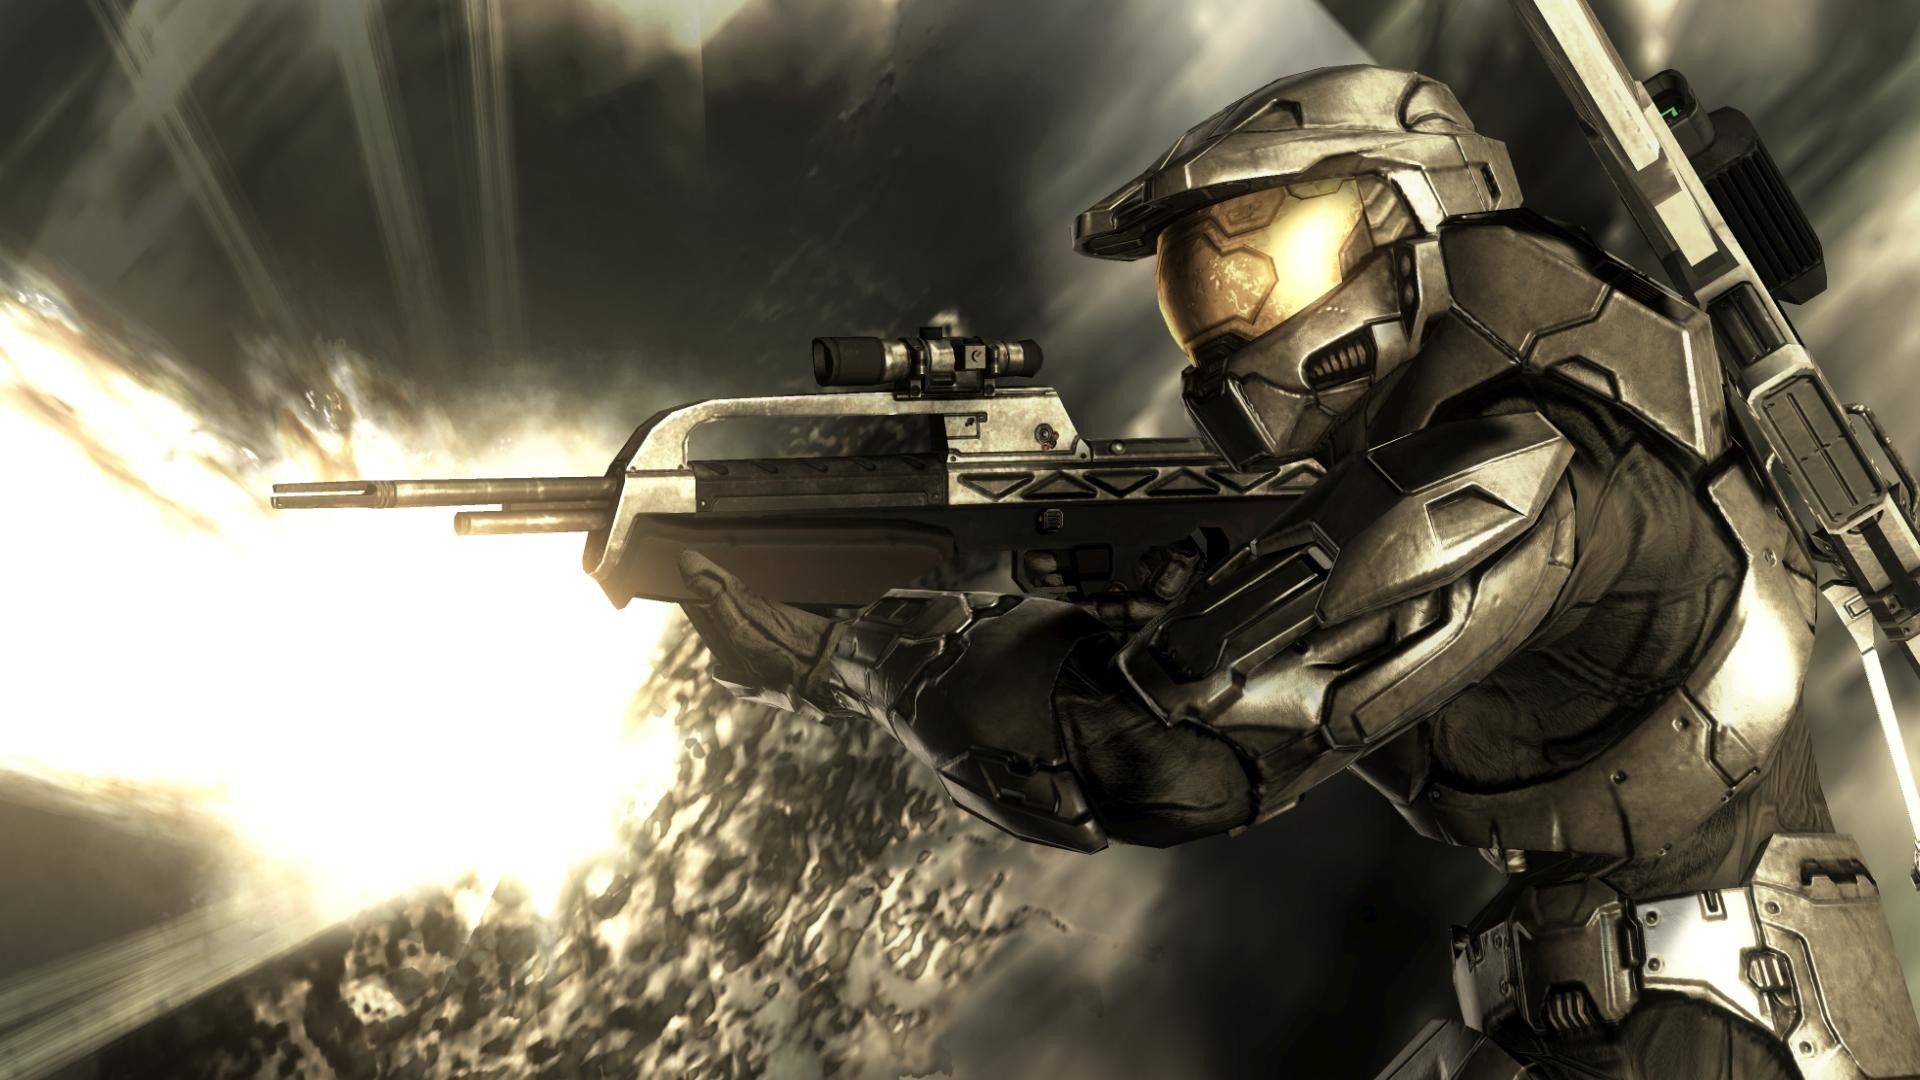 1920x1080 ... Halo 3 images Spartan wallpaper and background photos (15182378) ...